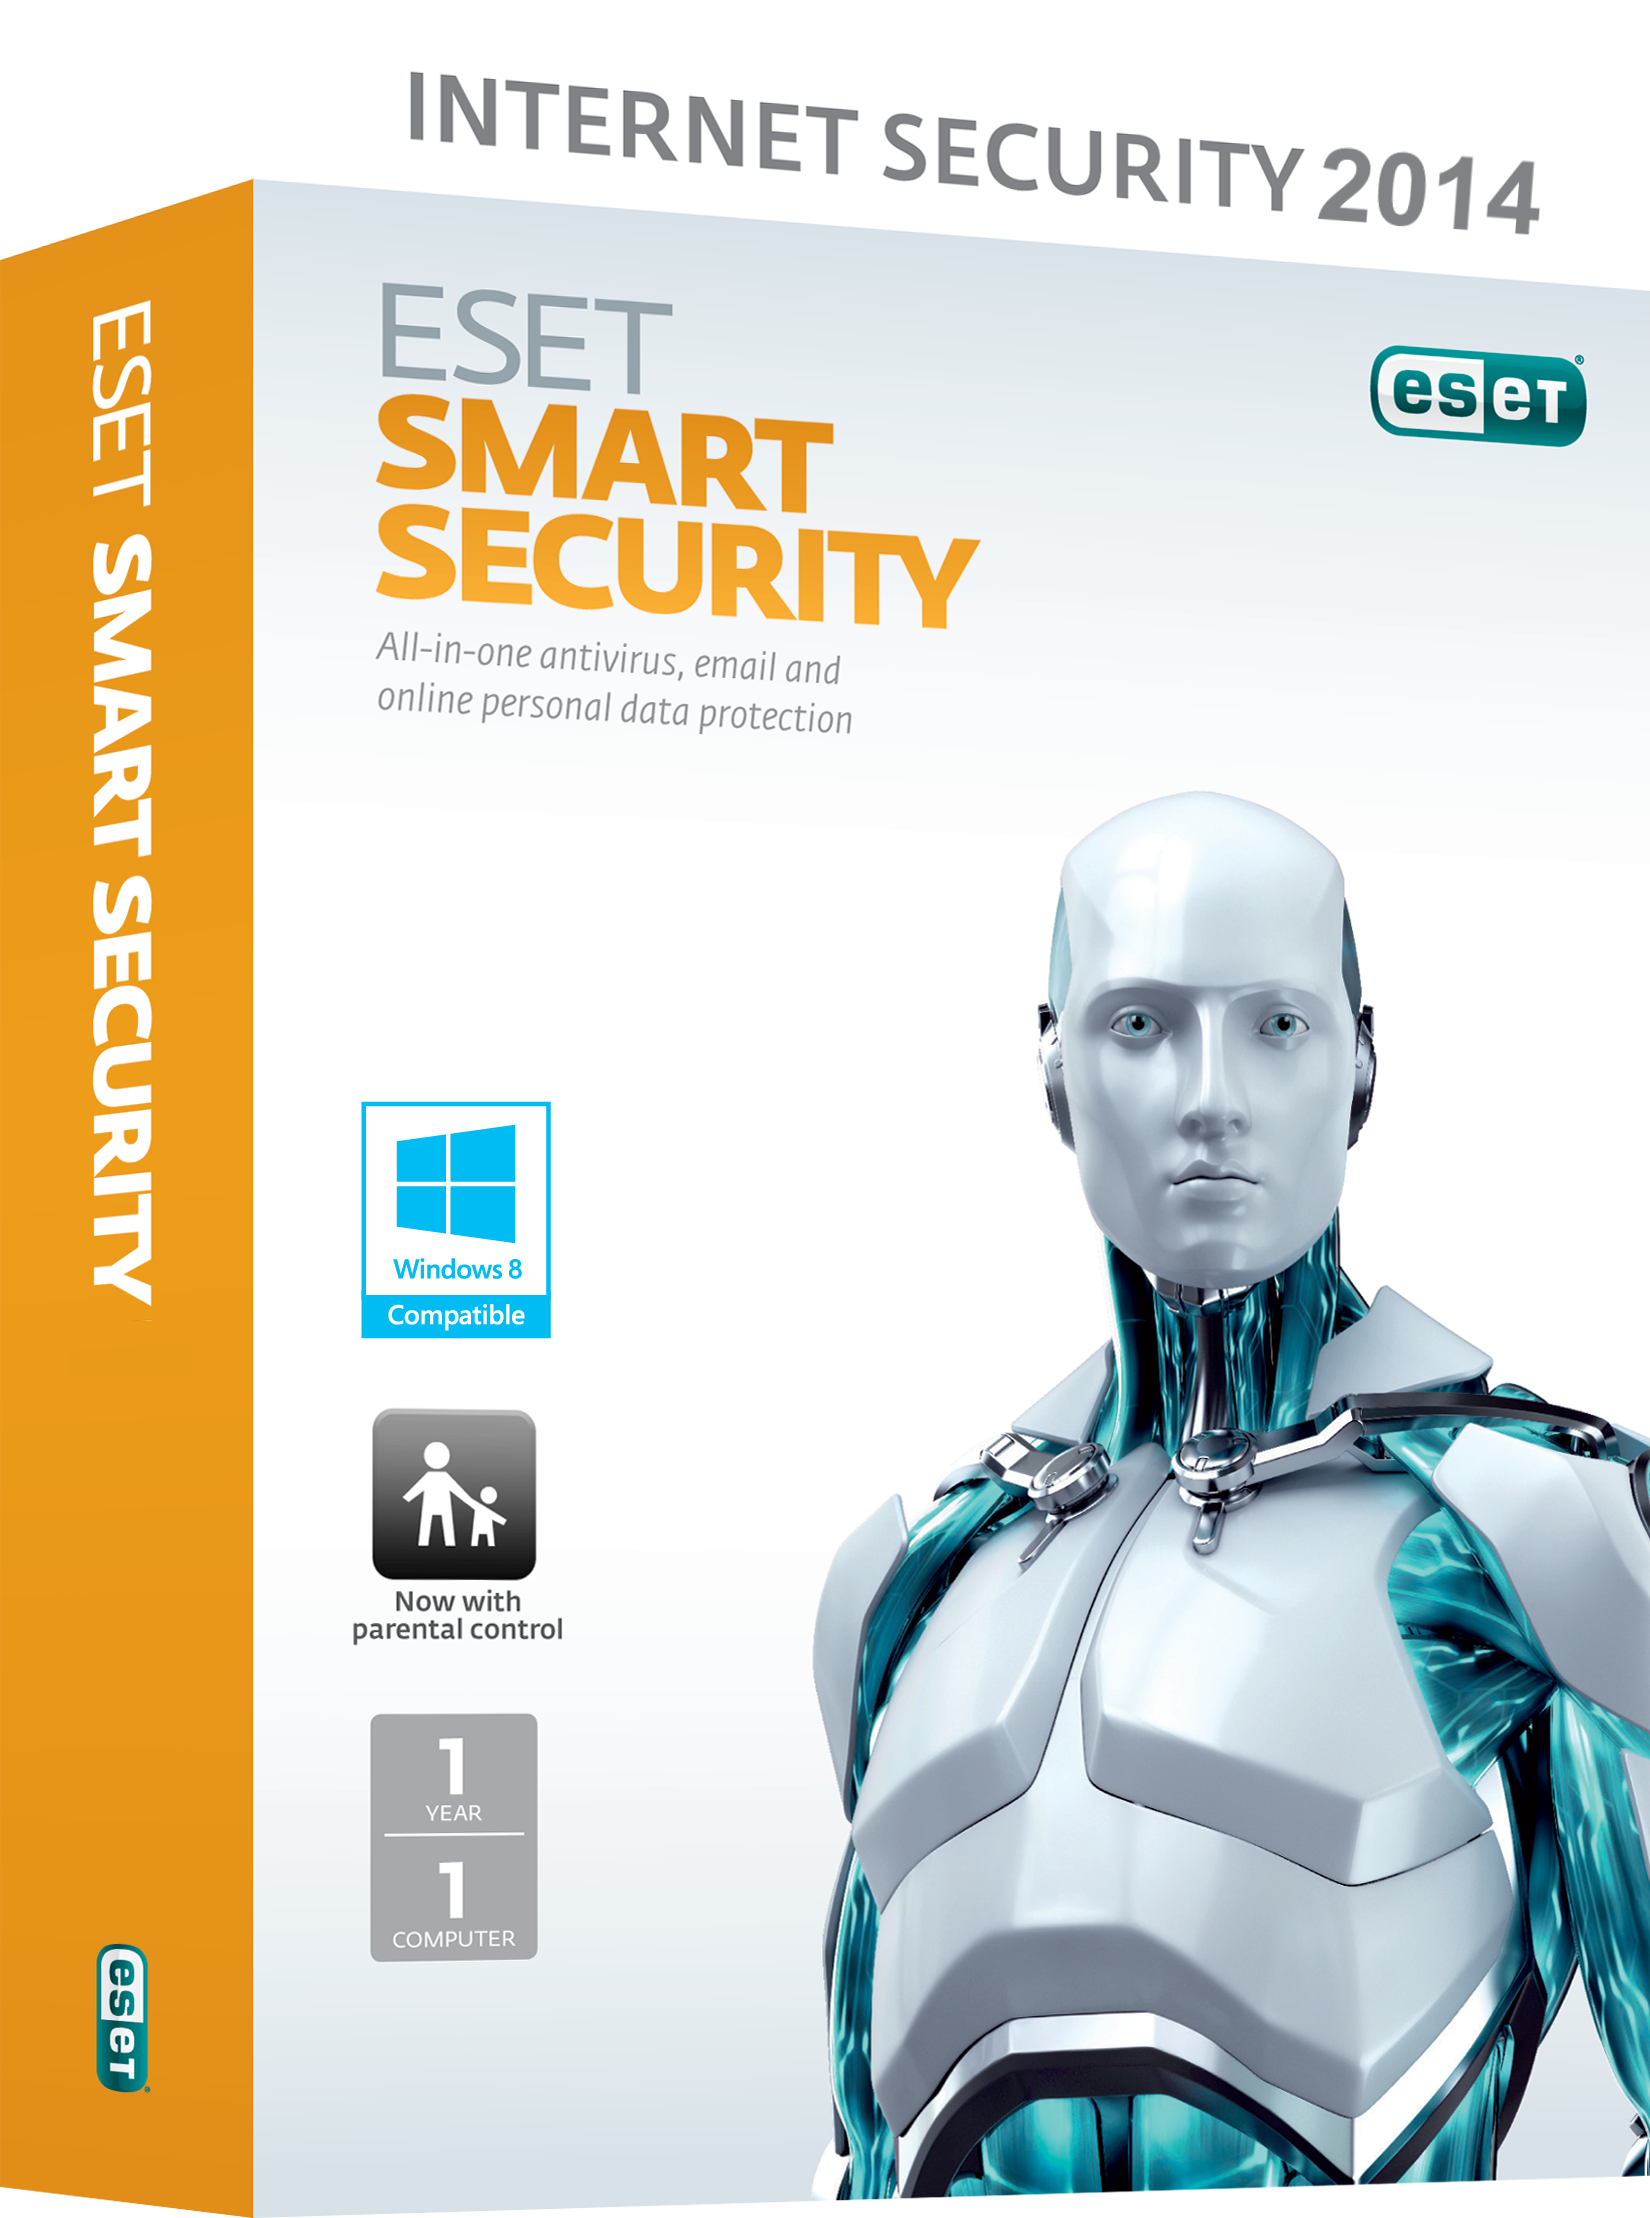 ESET Smart Security 8 Activation Key, is a renowned